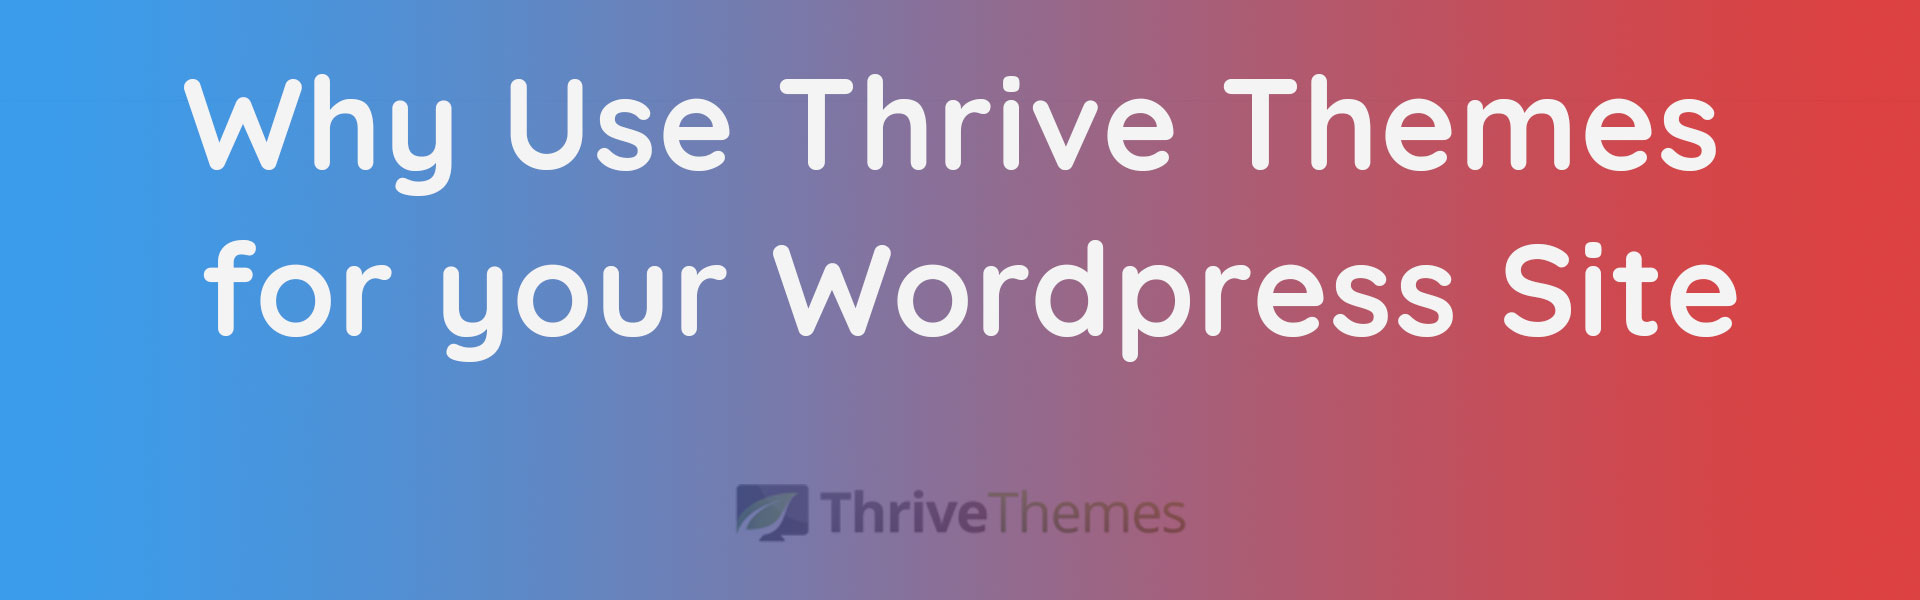 WordPress Themes Thrive Themes Outlet Coupon Promo Code 2020